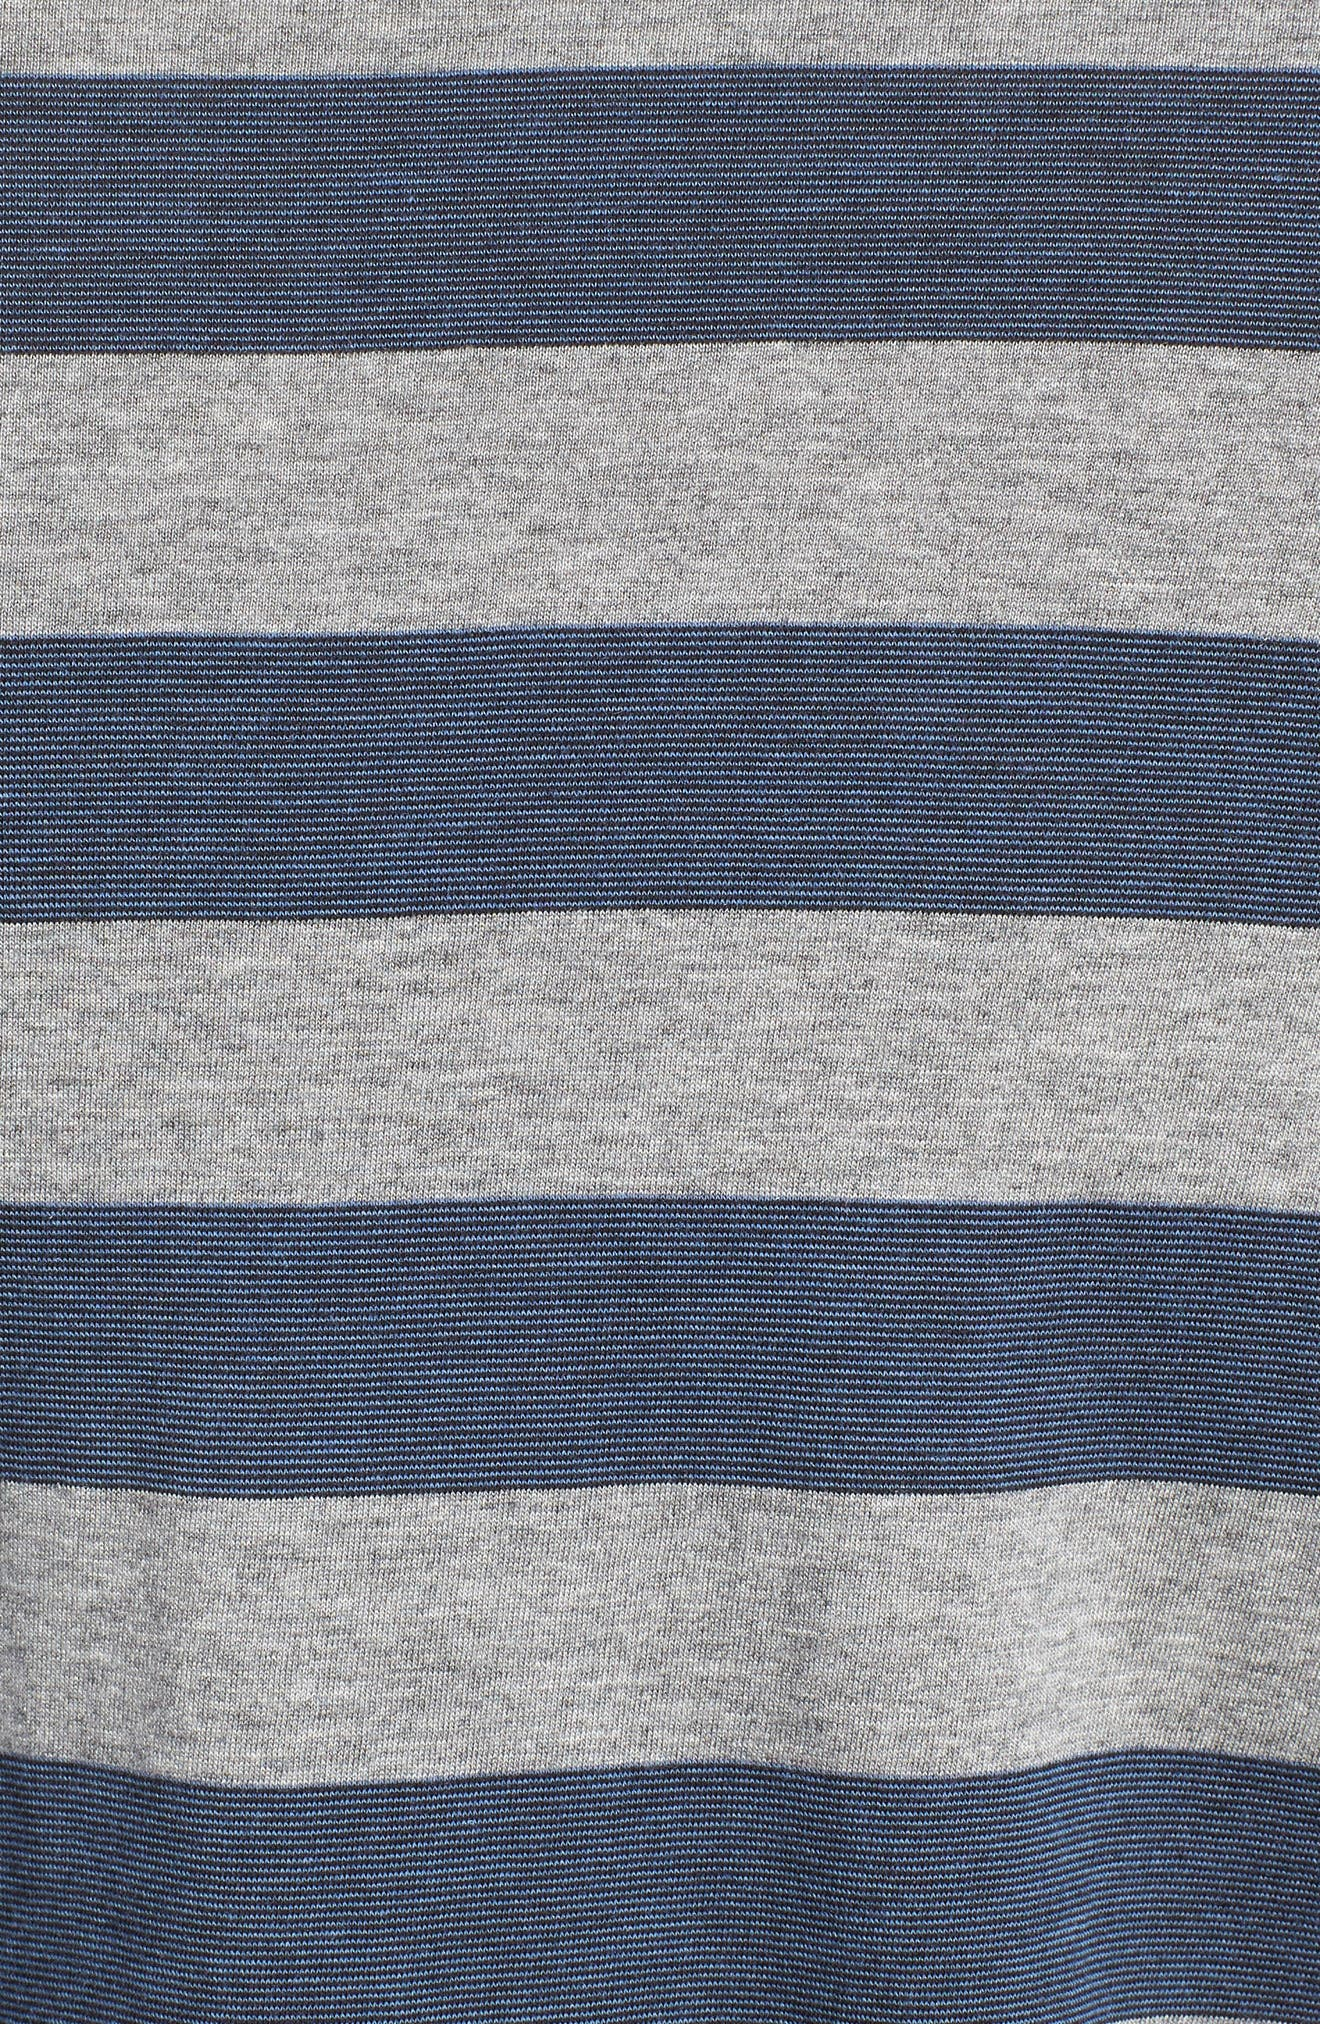 Stripe Pima Cotton & Modal V-Neck T-Shirt,                             Alternate thumbnail 5, color,                             020